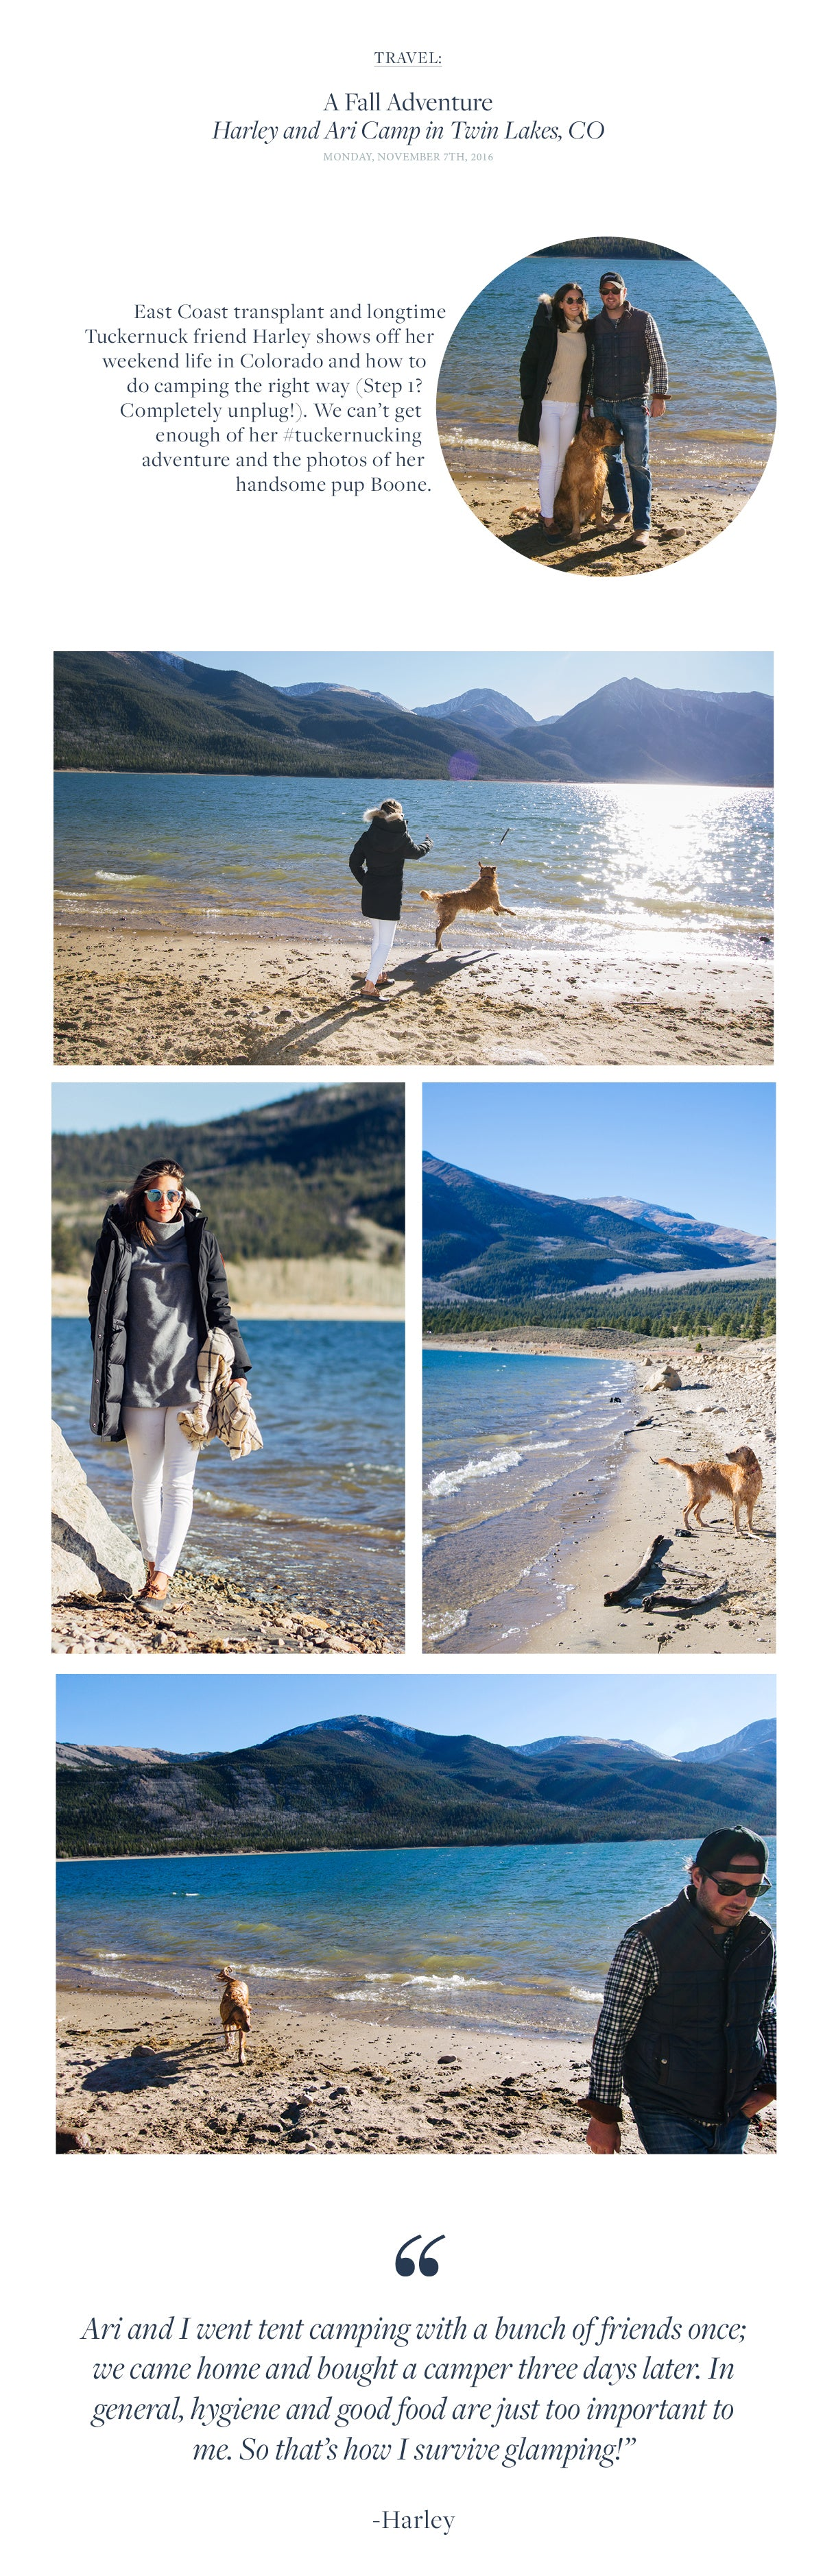 East Coast transplant and longtime  Tuckernuck friend Harley shows off her weekend life in Colorado and how to do camping the right way (Step 1?  Completely unplug!). We can't get enough of her #tuckernucking  adventure and the photos of her  handsome pup Boone.